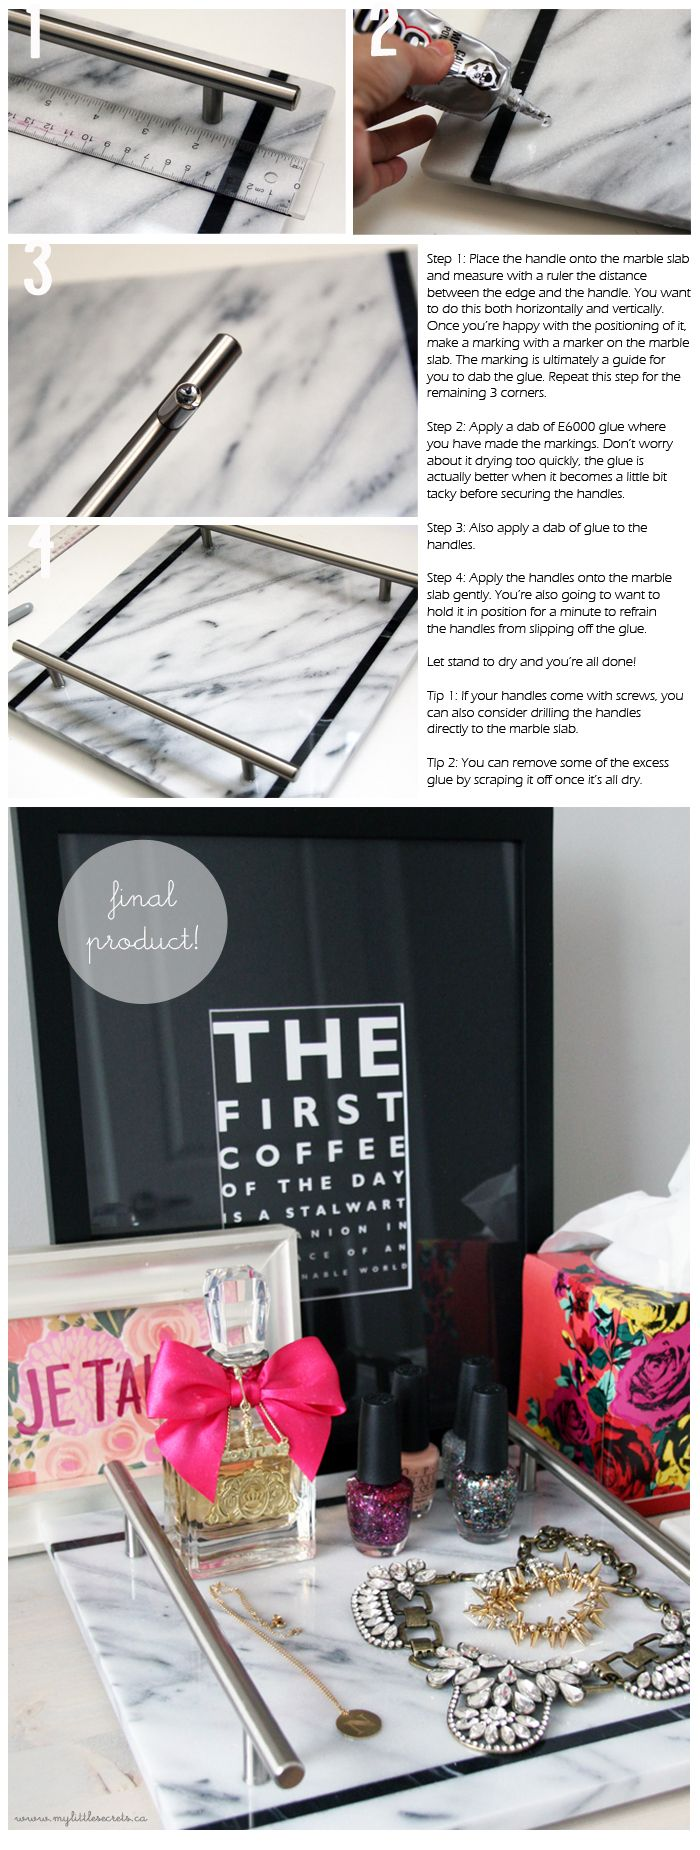 diy marble slab vanity tray made with pastry marble slab and